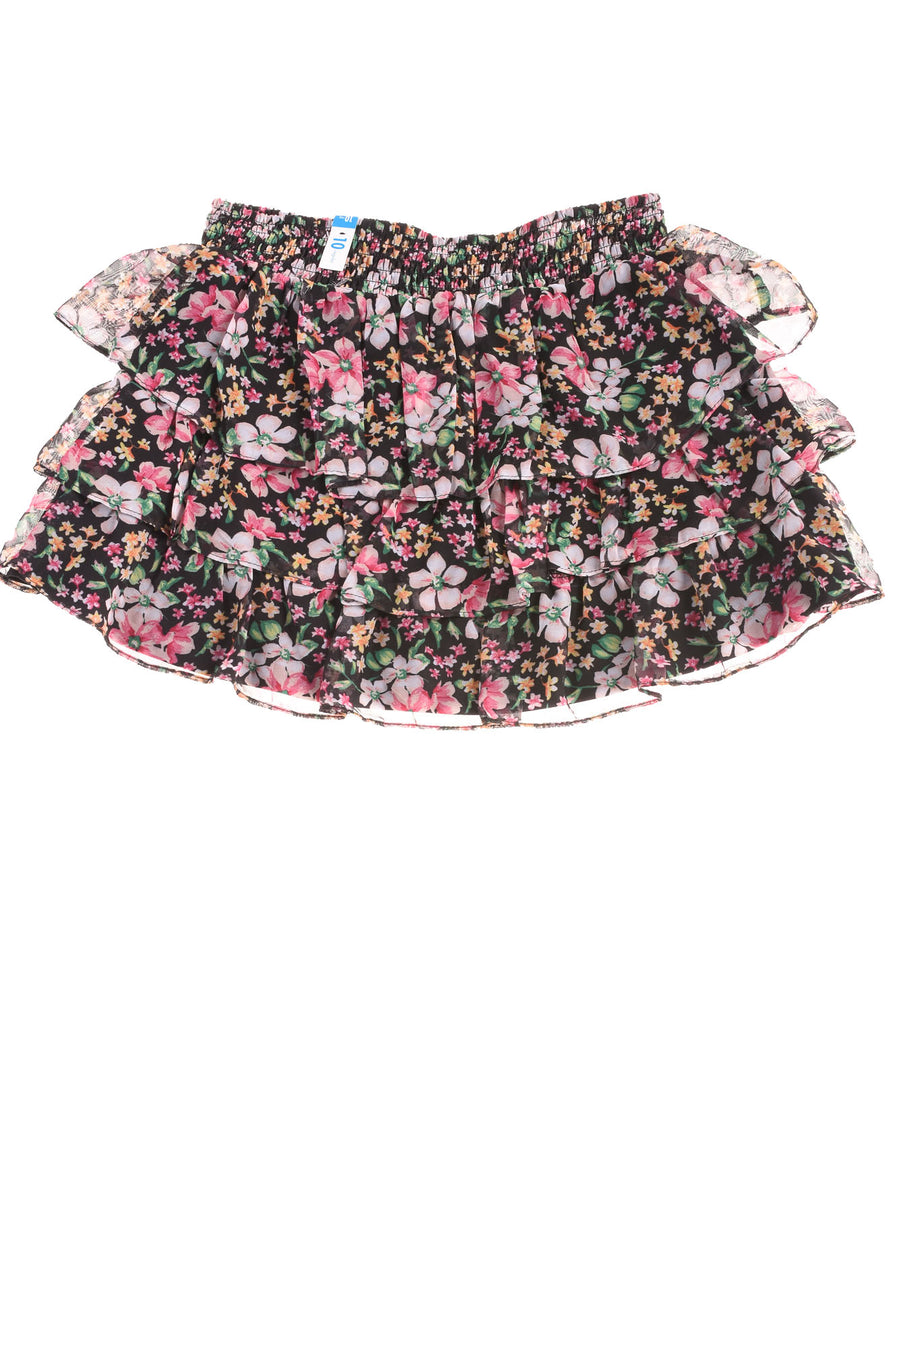 NEW Justice Girl's Skirt 10 Black & Pink